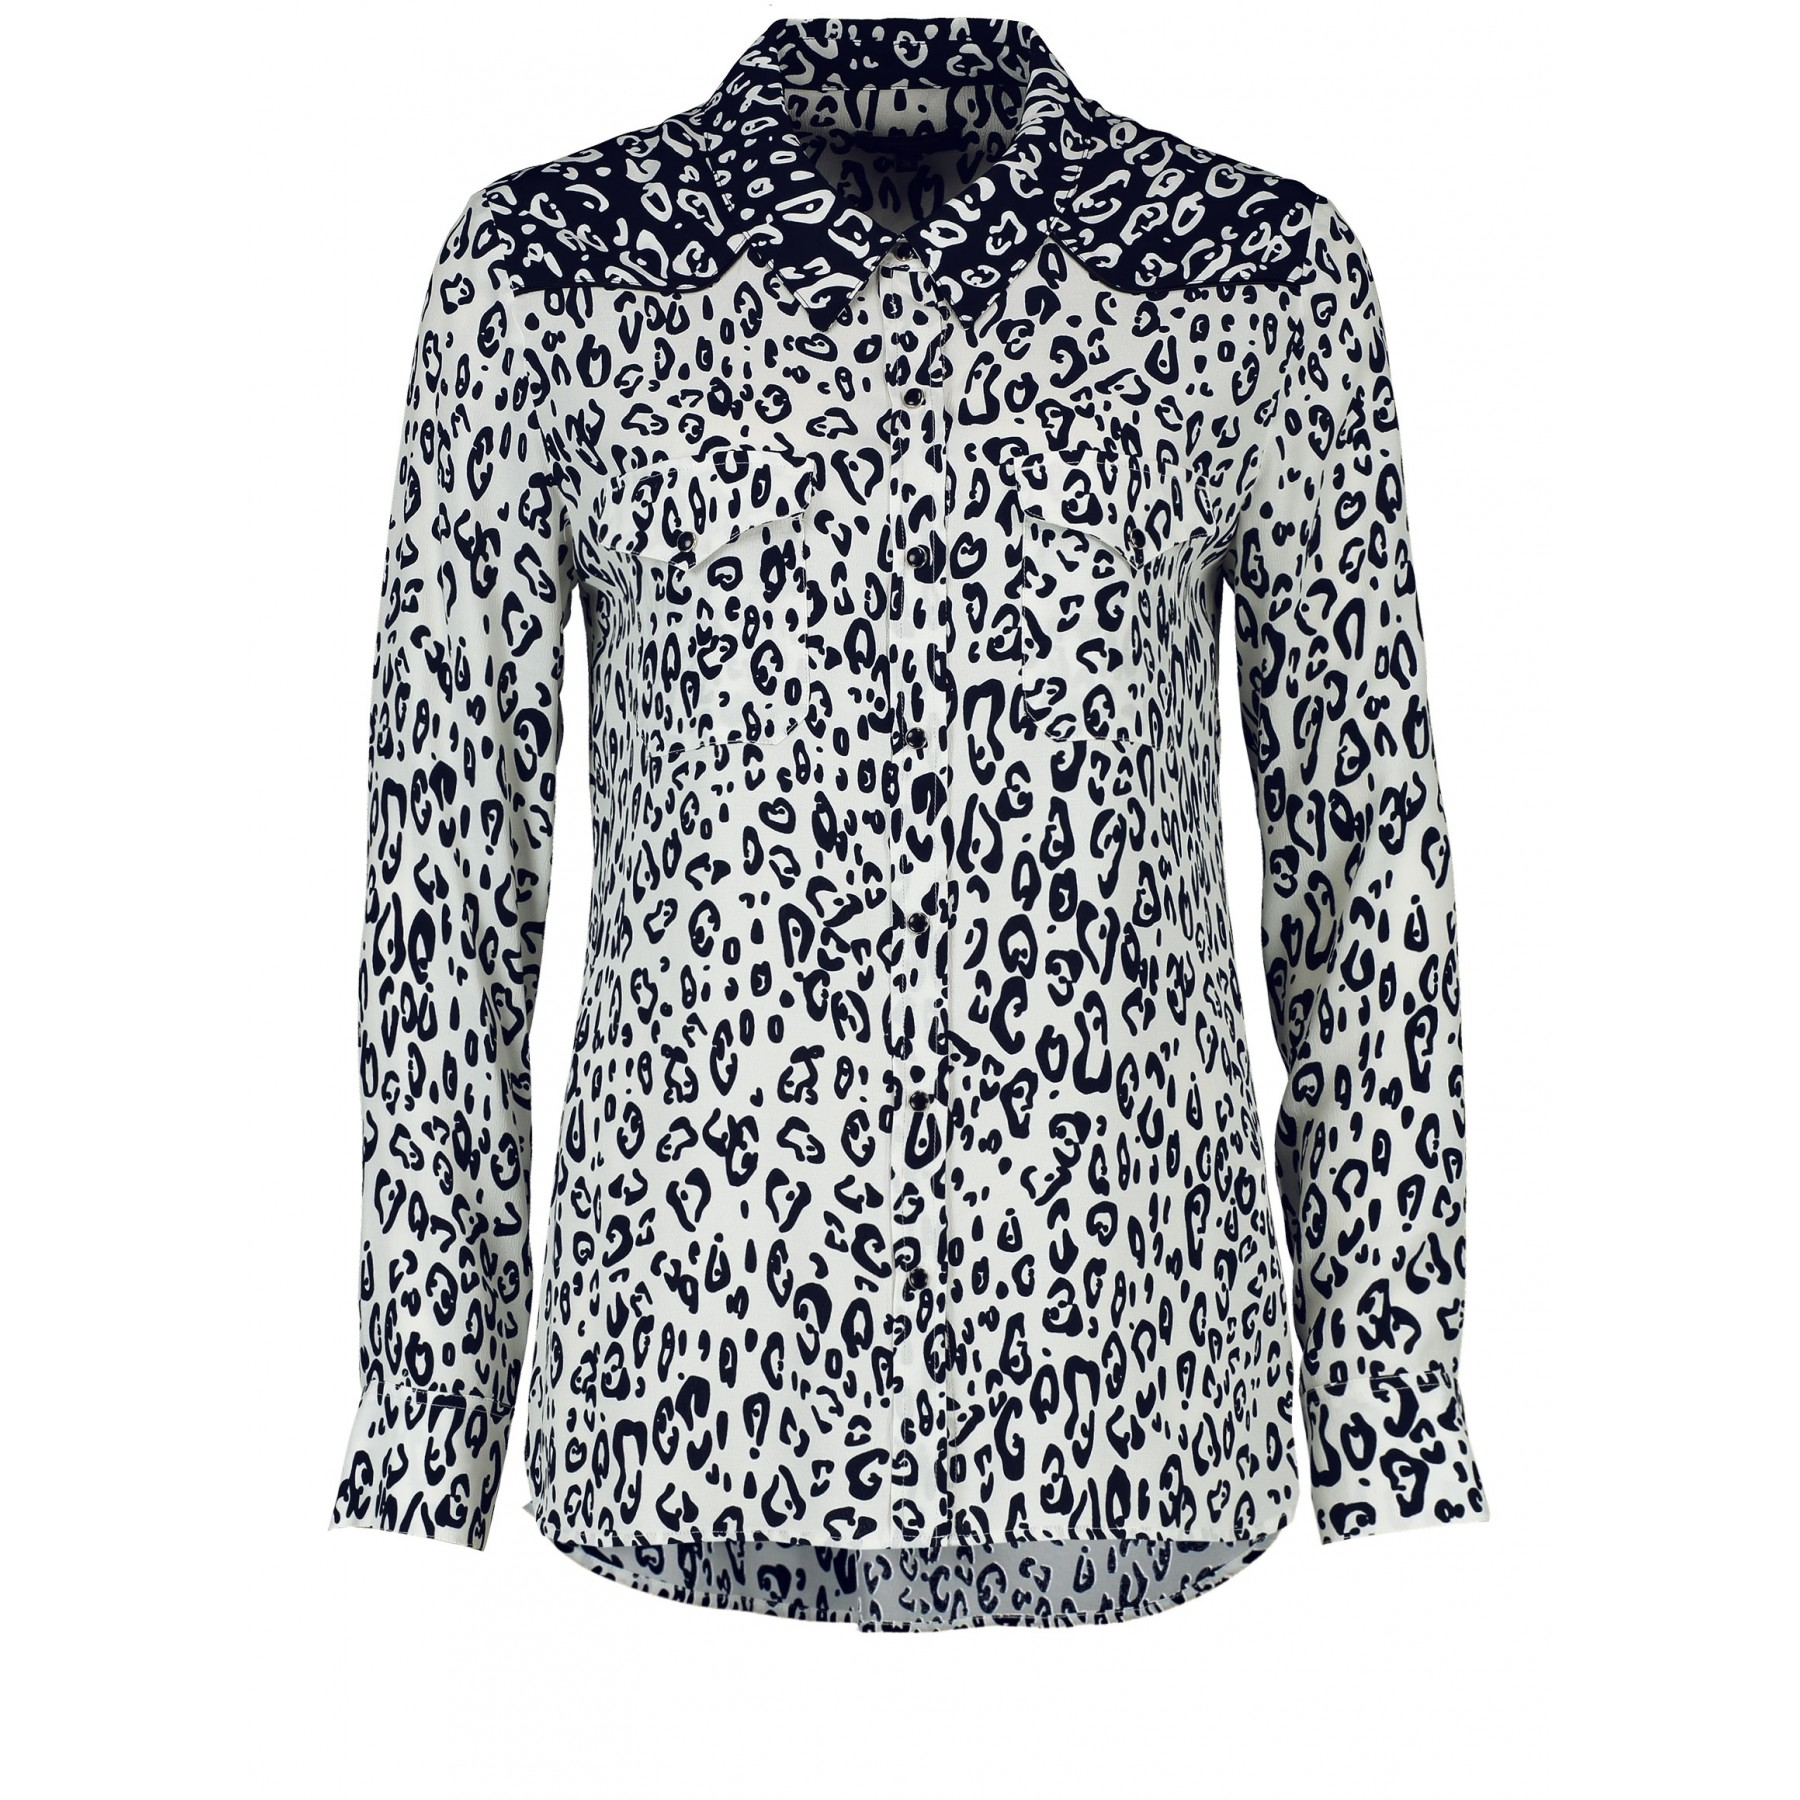 Sträter Claudia Sträter Blouse Claudia Sträter Claudia Sträter Claudia Blouse Sträter Blouse Blouse Claudia 9YIW2eDEH